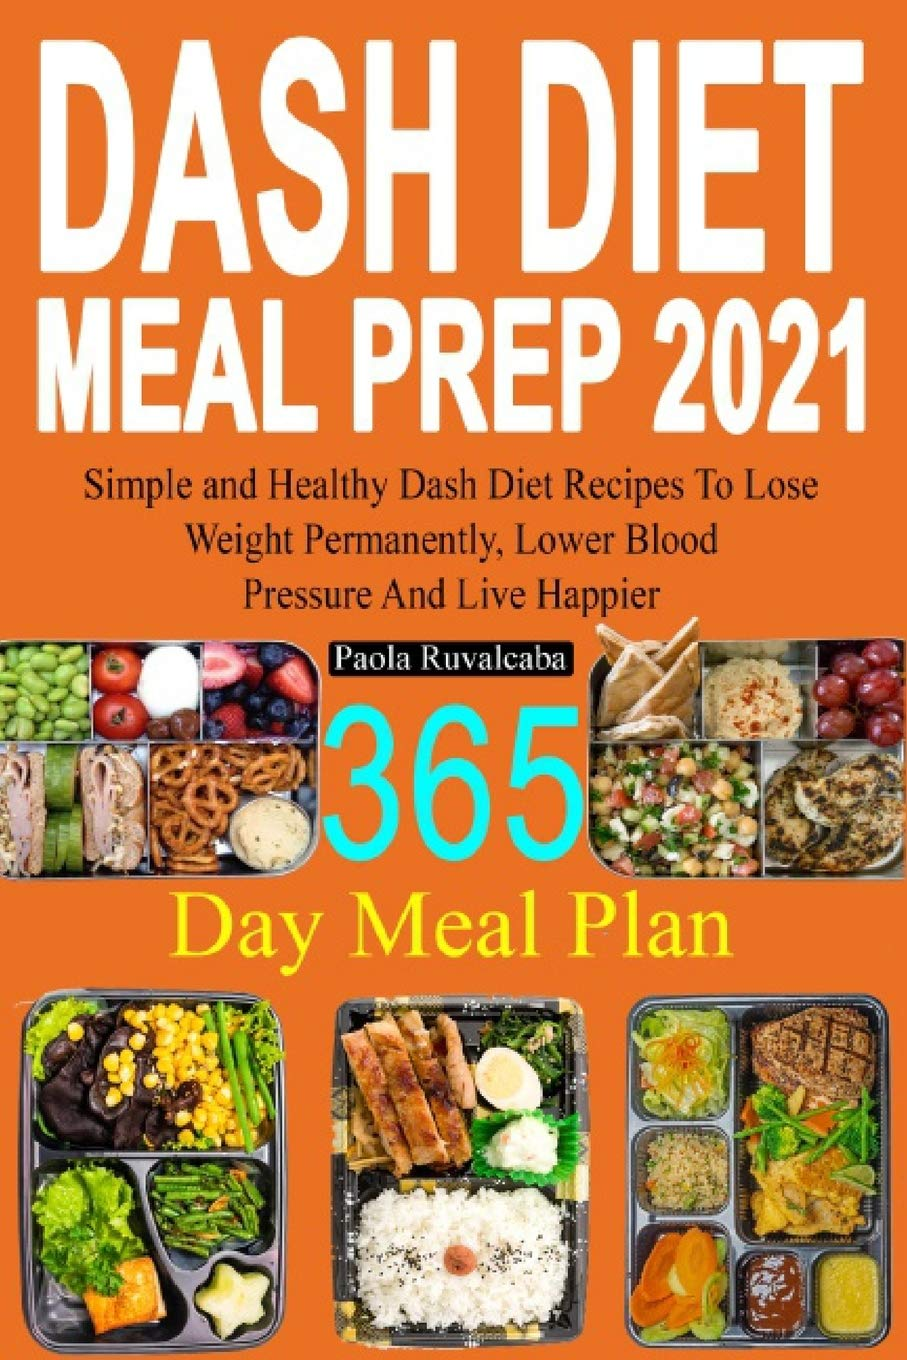 Dash Diet Meal Prep 2021 365 Day Meal Plan Simple And Healthy Dash Diet Recipes Lose Weight Permanently Lower Blood Pressure And Live Happier Amazon De Ruvalcaba Paola Fremdsprachige Bucher